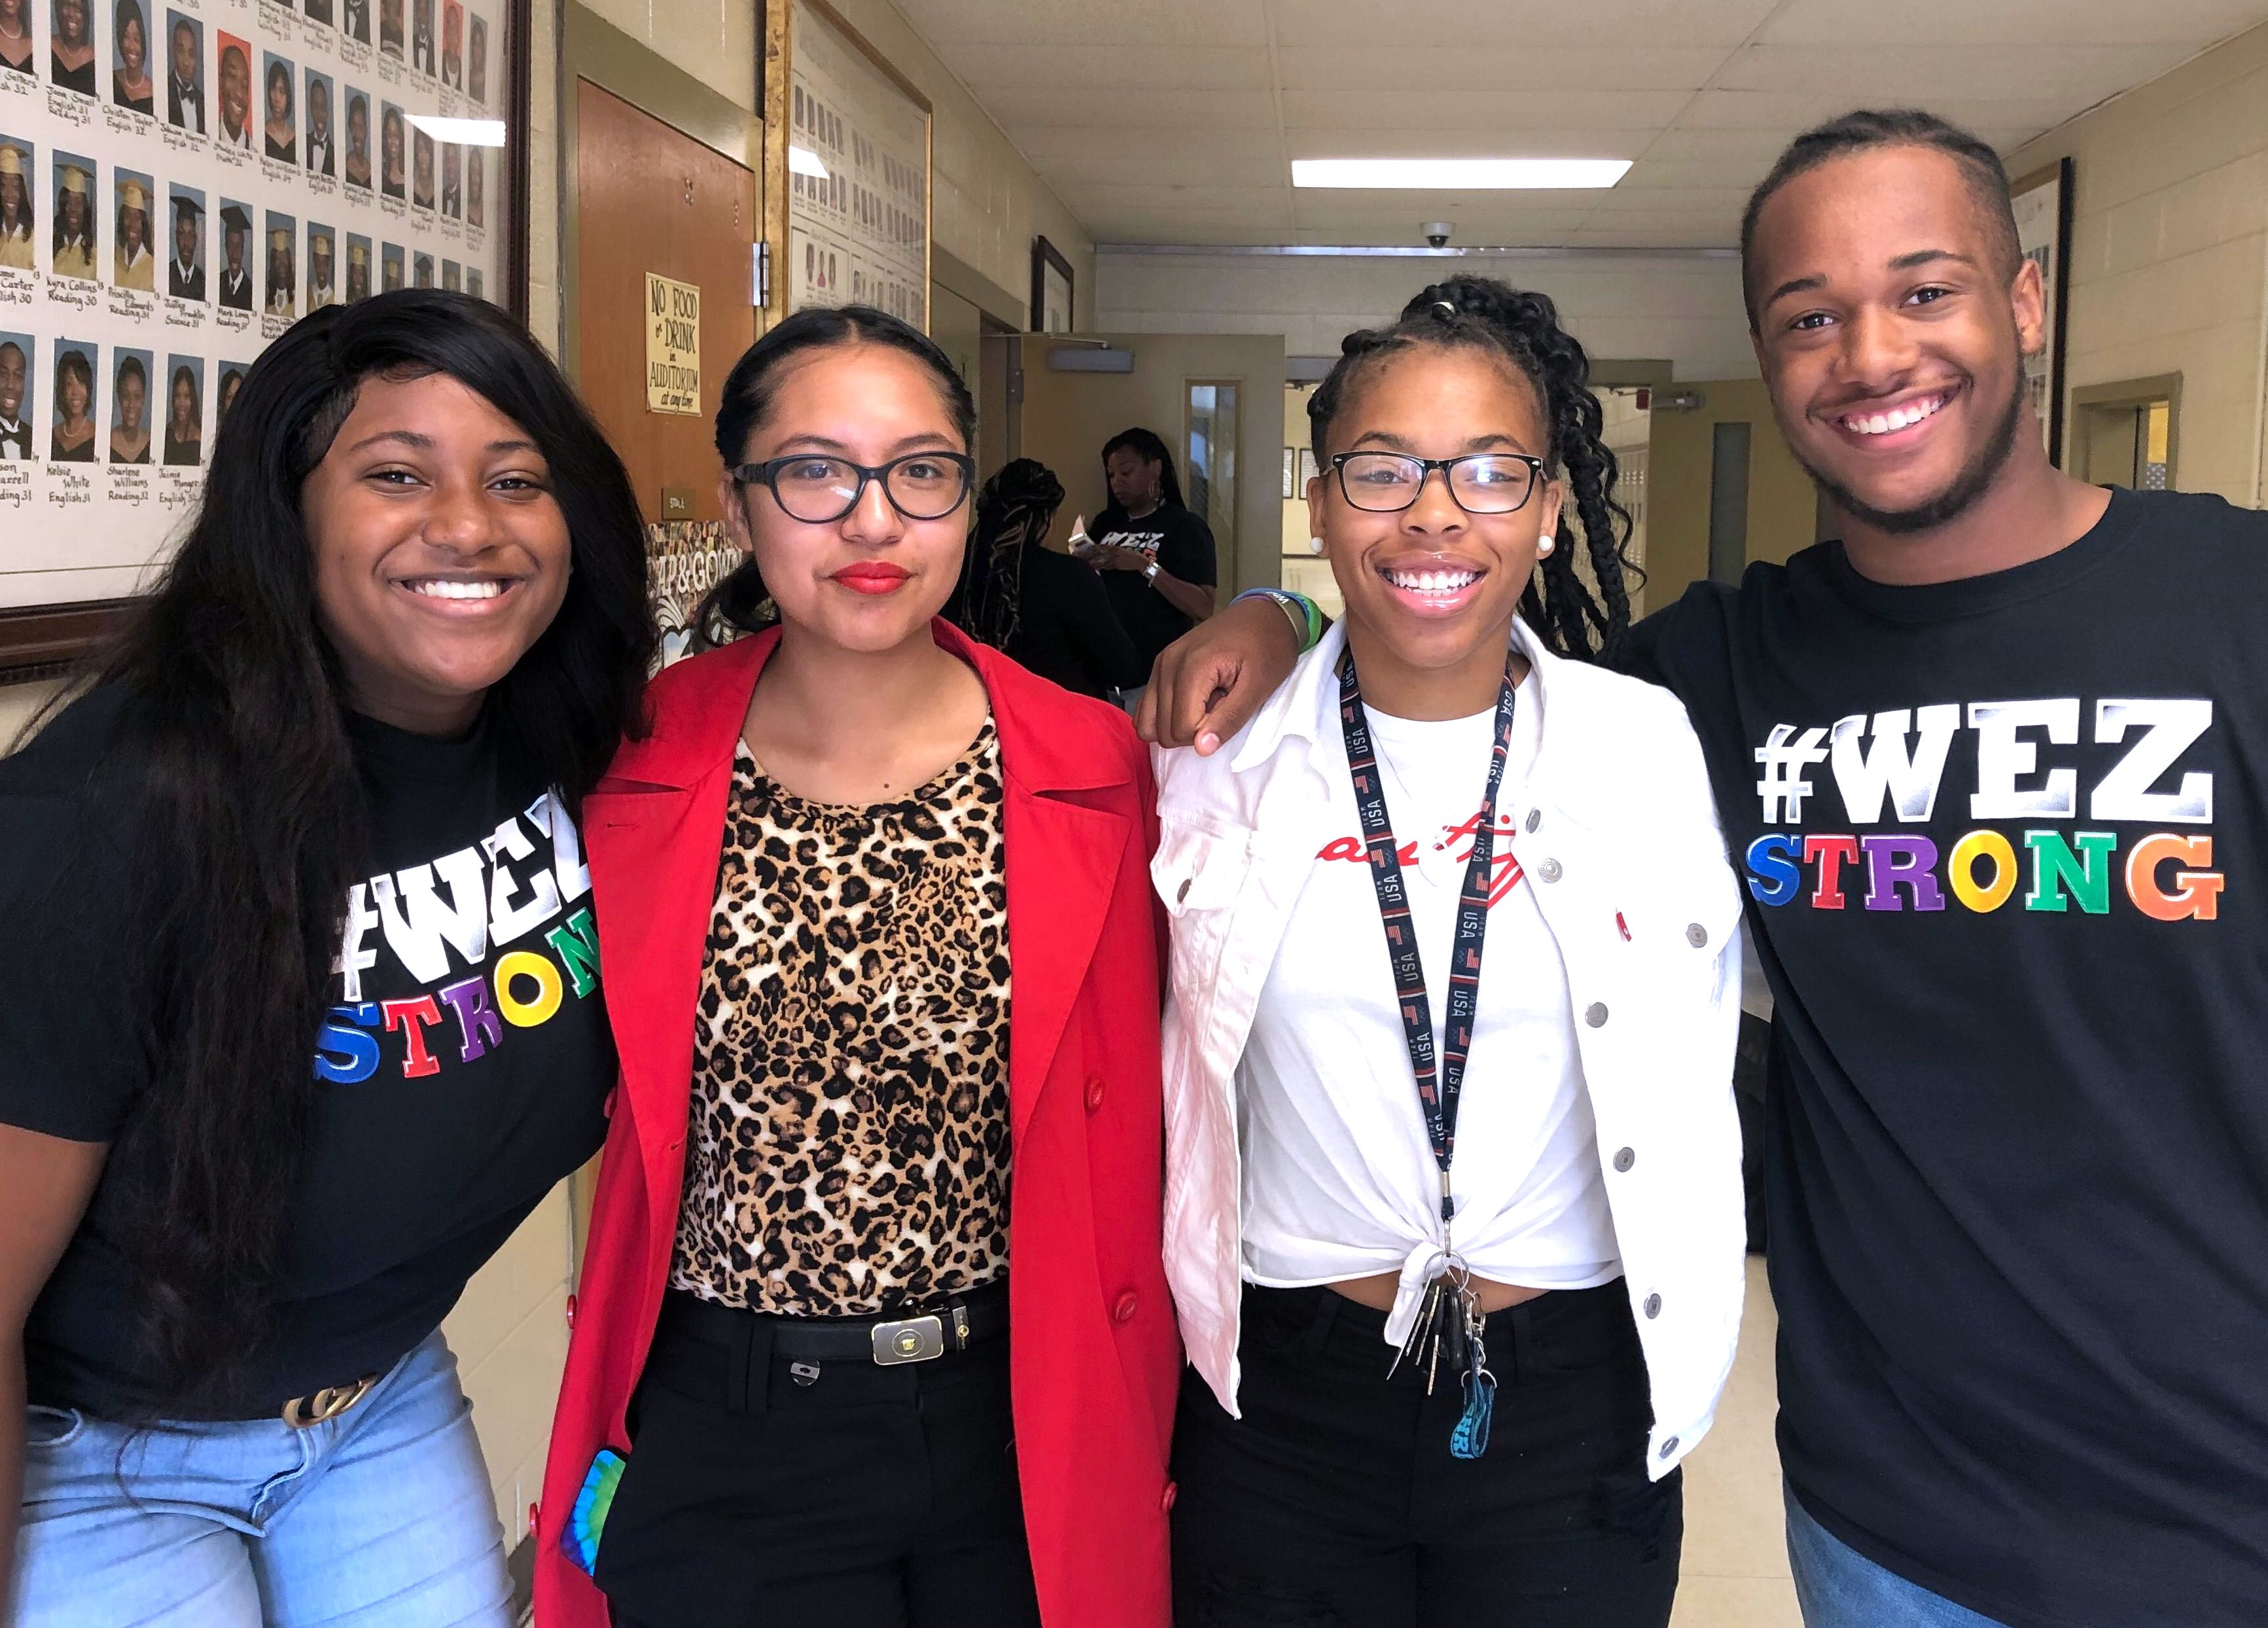 Whitehaven High School students from left, Kanah Myers, Angeles Rosales, Se'Quoia Allmond, and Keith Newsum.